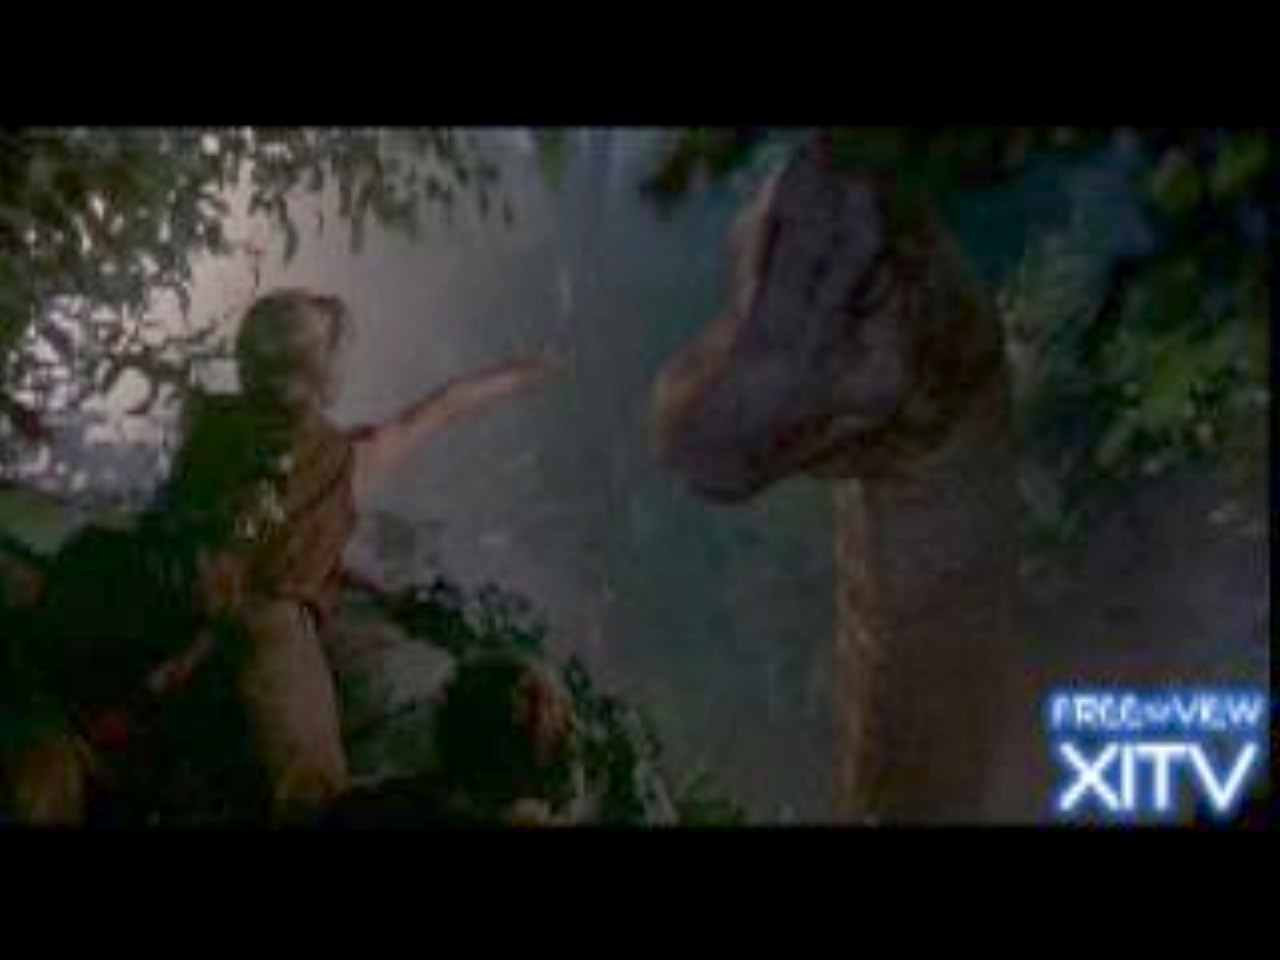 XITV FREE <> VIEW Jurassic Park! Starring Laura Dern! XITV Is Must See TV!